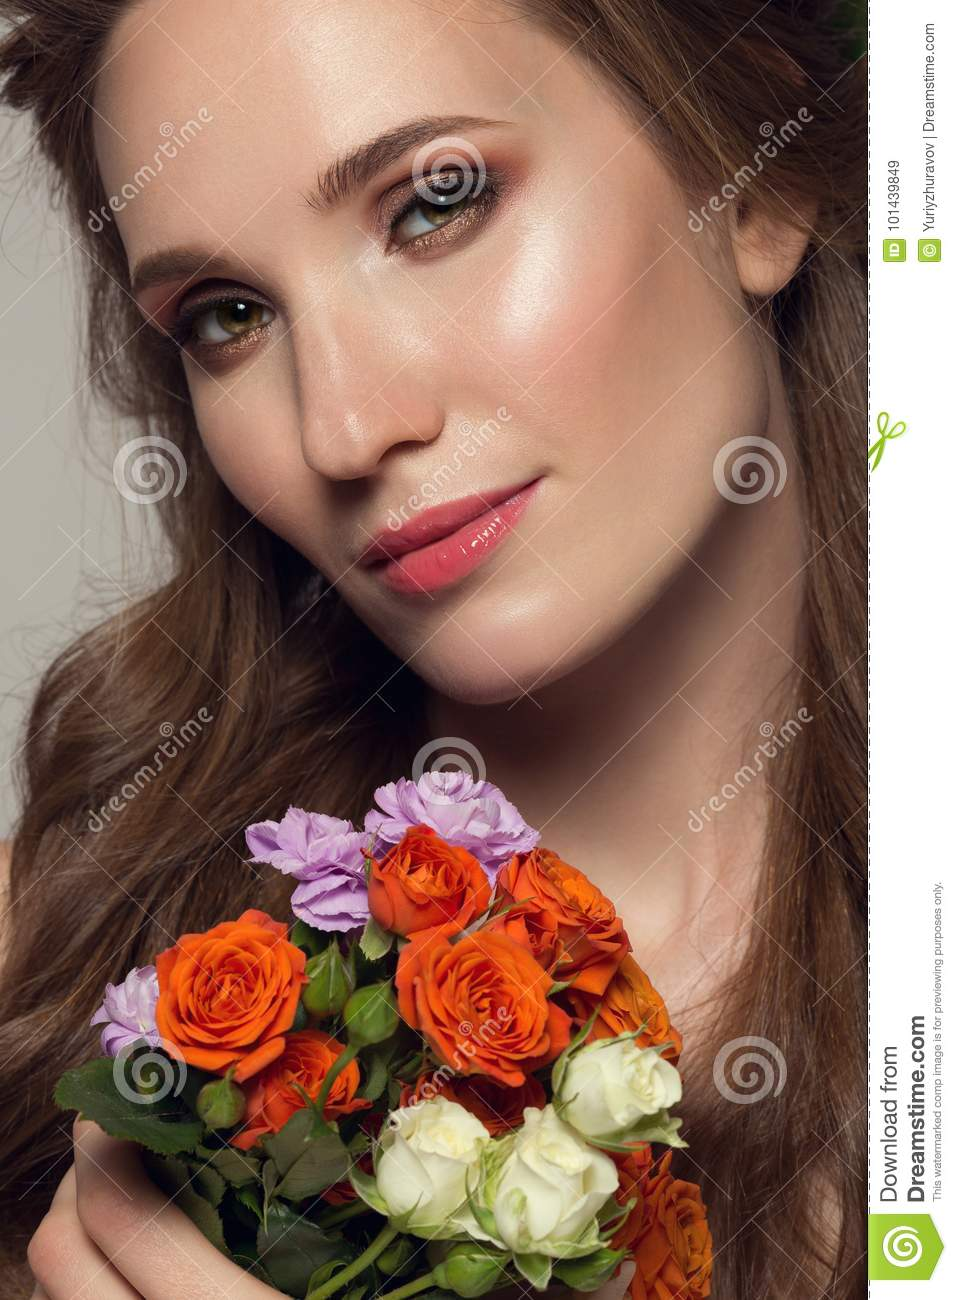 Close up portrait of young beautiful woman with flowers stock image download close up portrait of young beautiful woman with flowers stock image image of izmirmasajfo